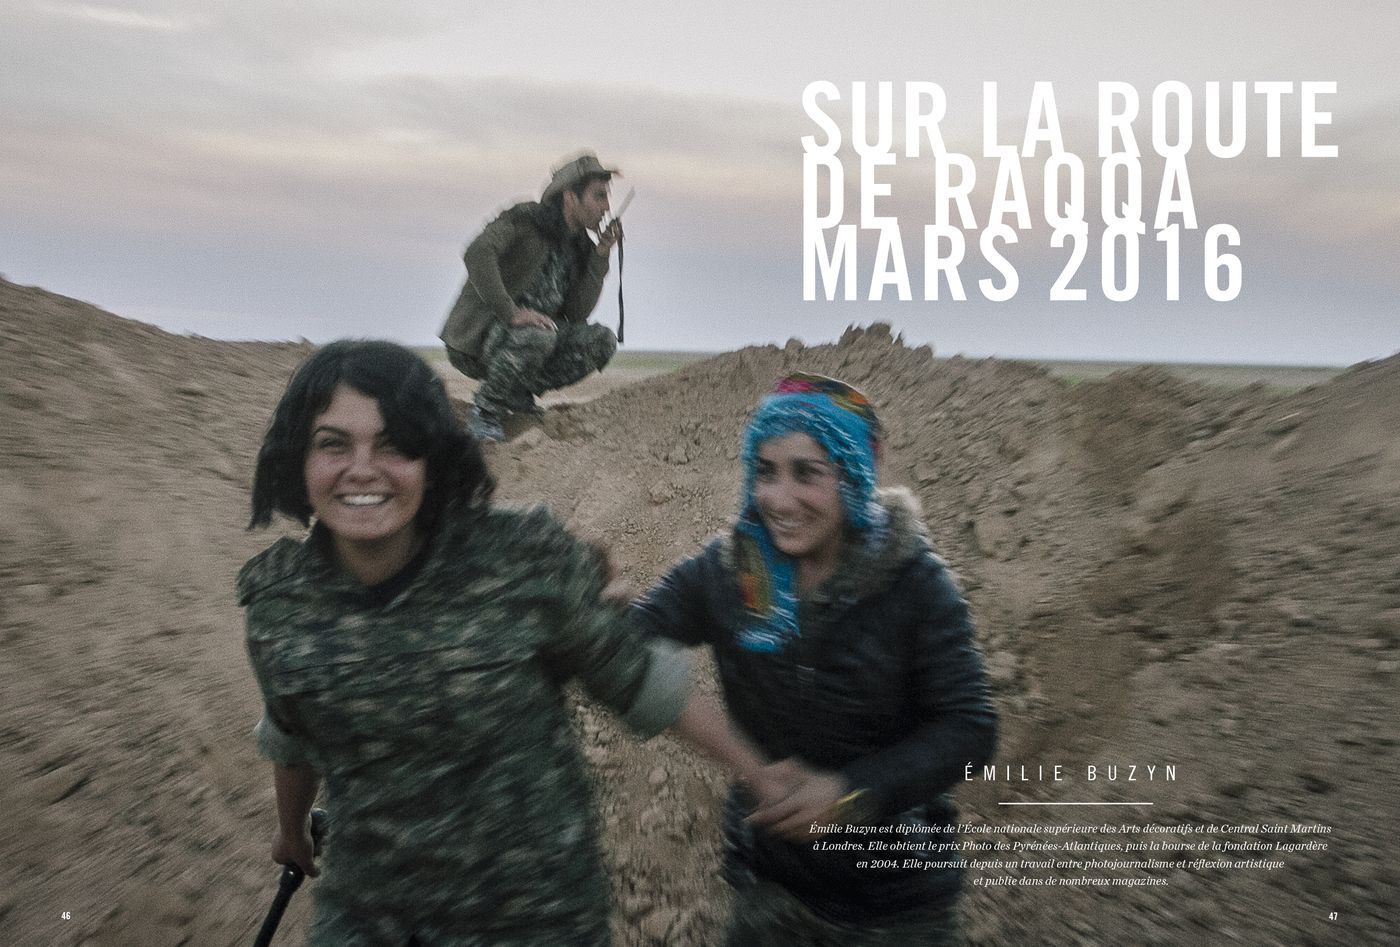 Possession Immédiate Volume 5 - Photographies et texte d'Émilie Buzyn, Sur la route de Raqqa